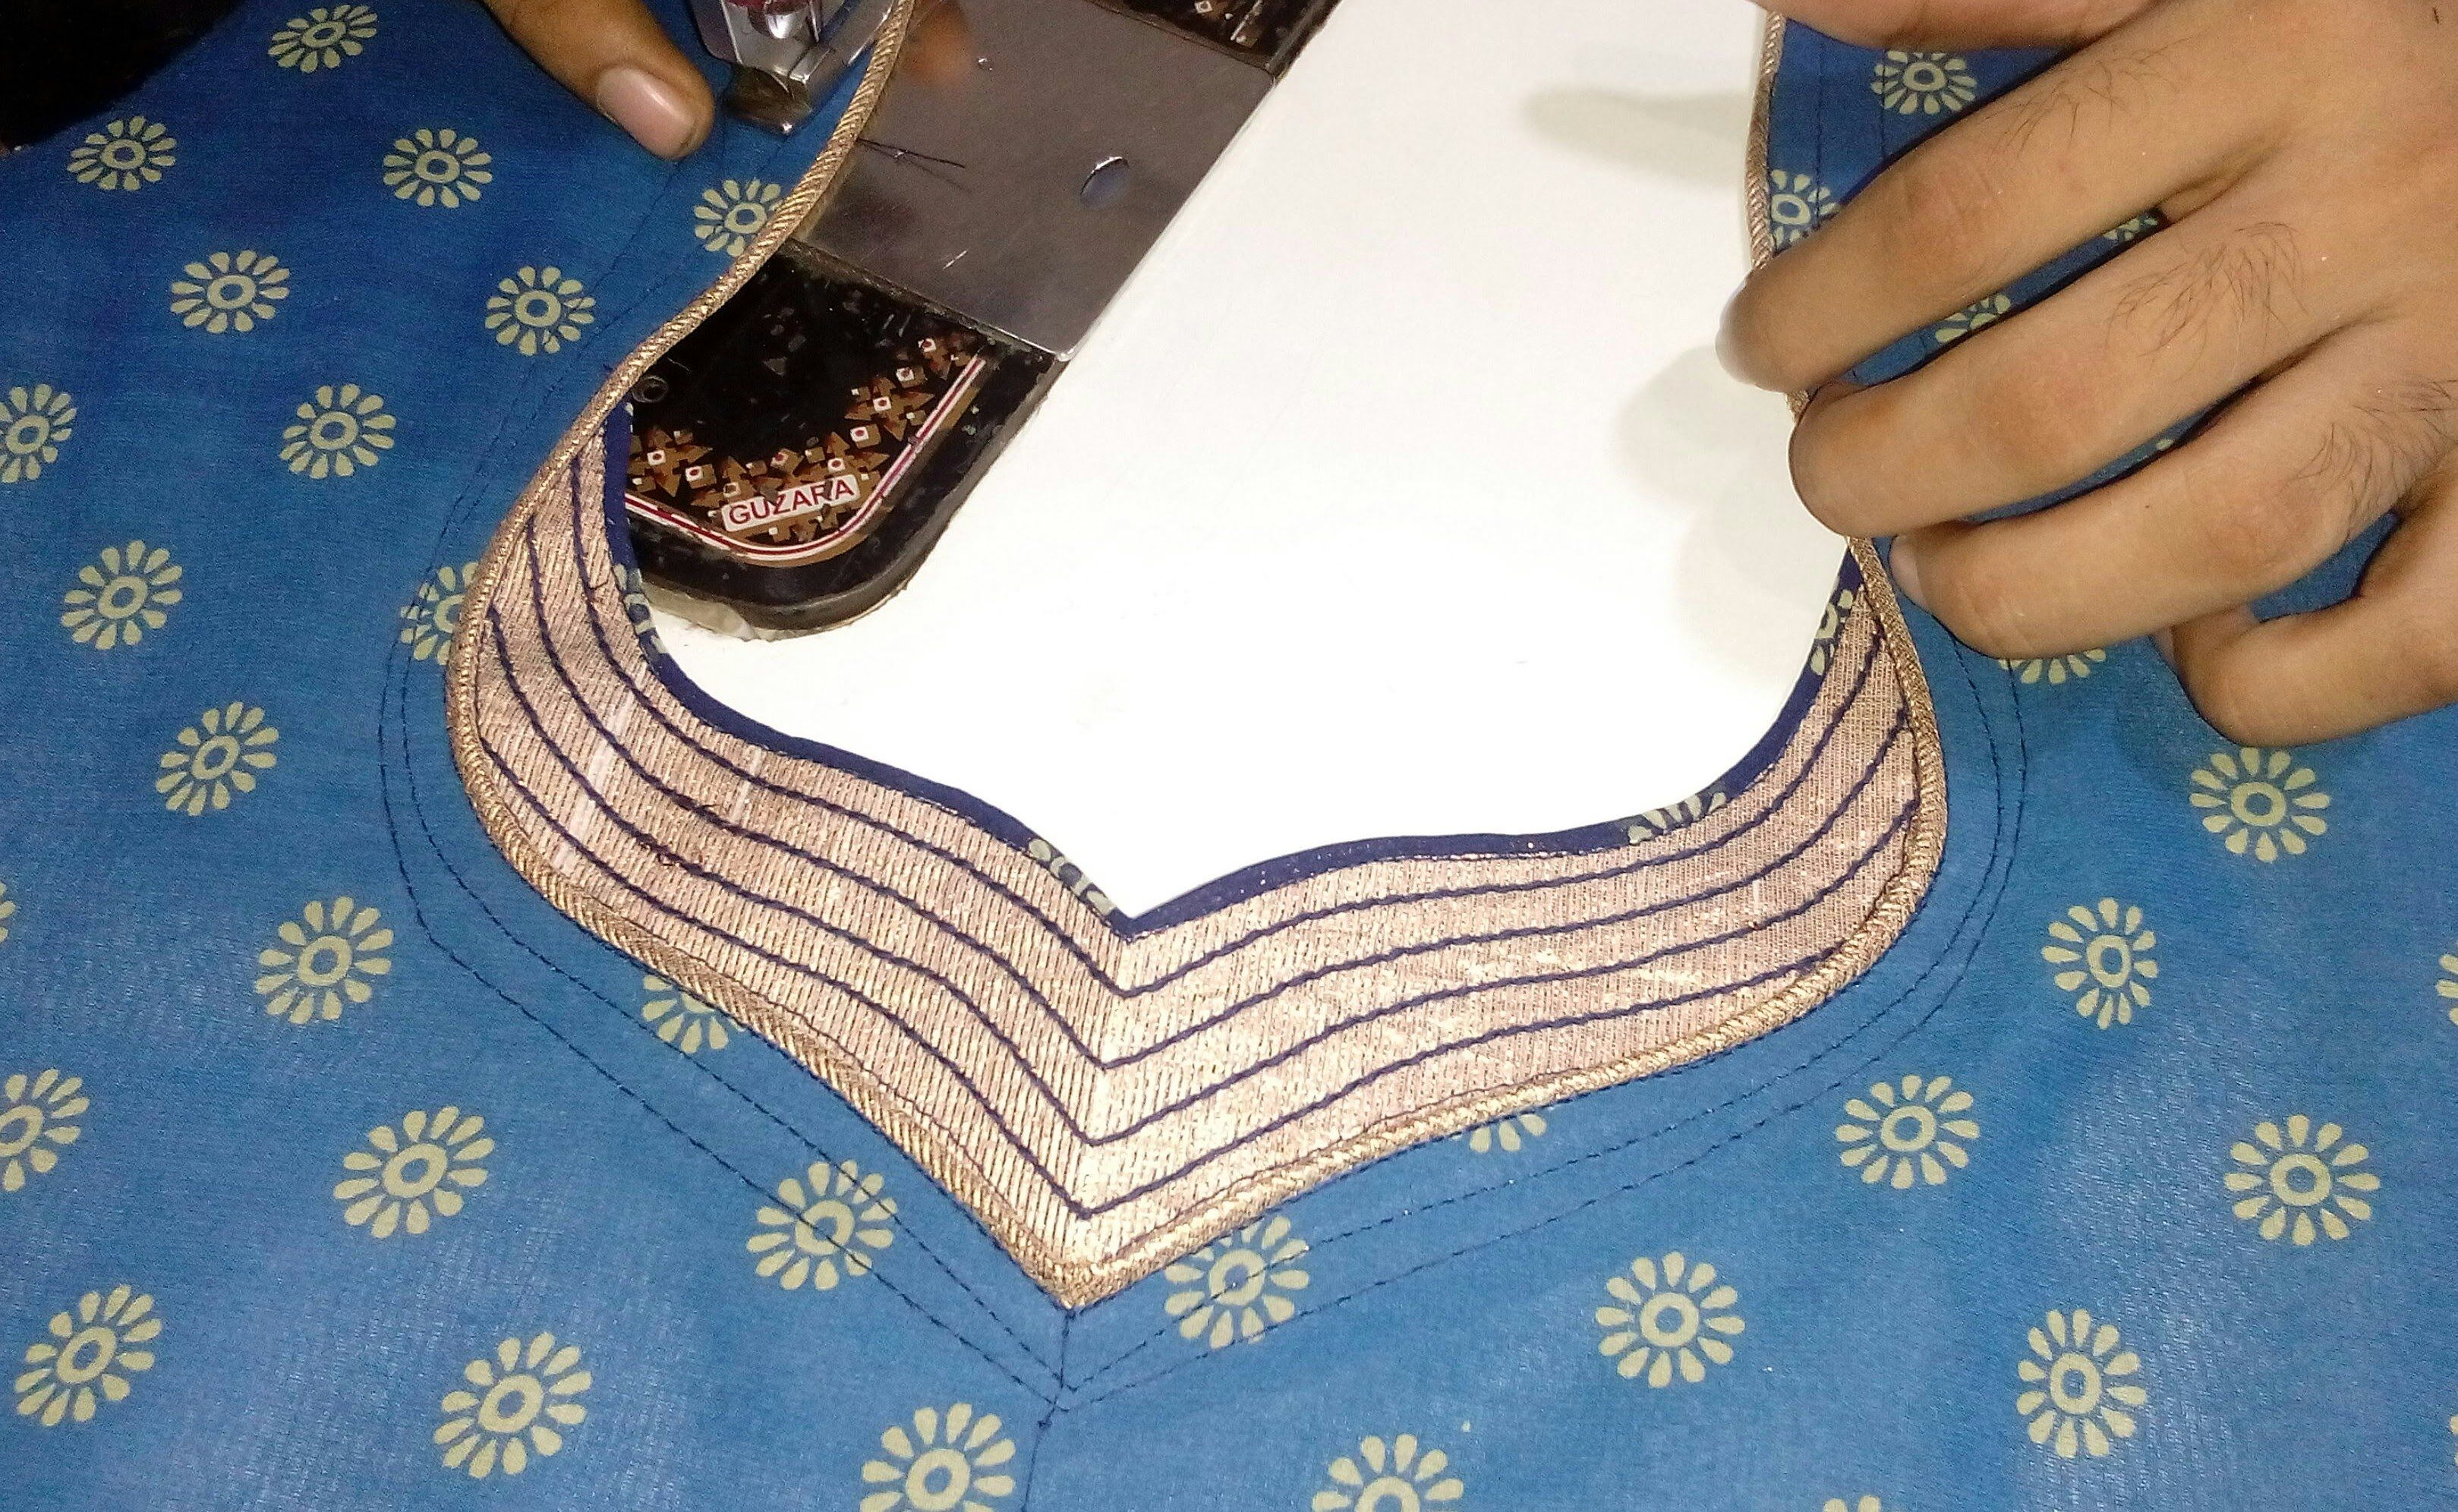 shirt cutting and stitching tutorial